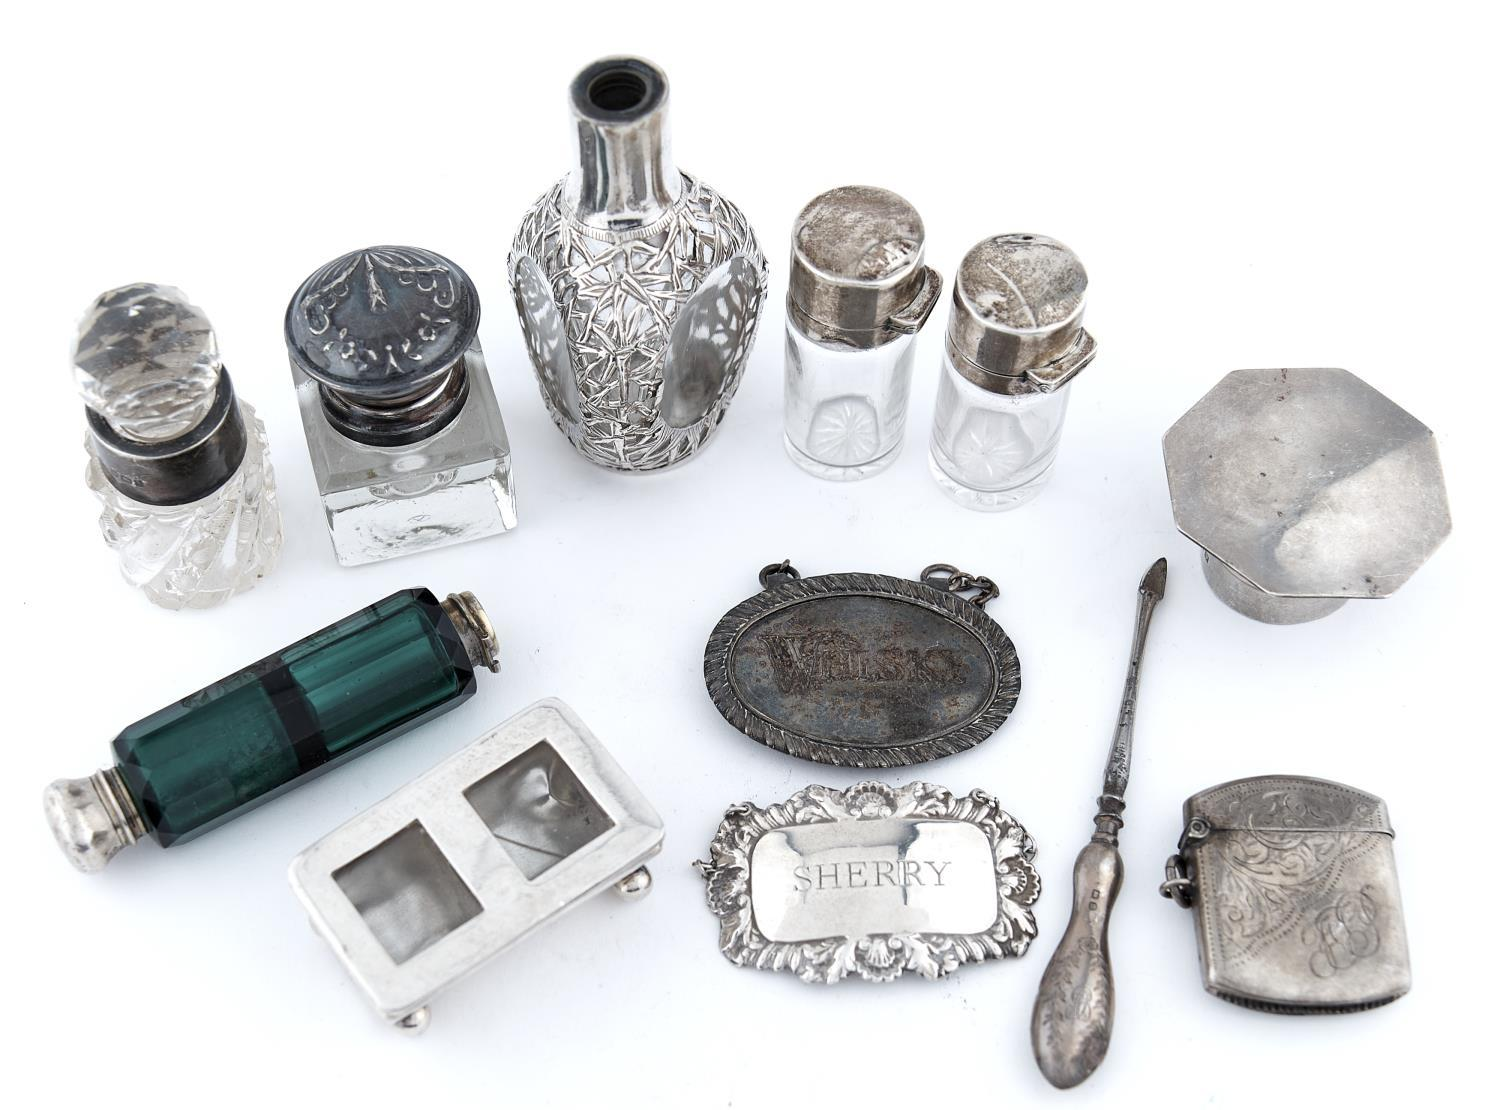 TWO SIMILAR SILVER MOUNTED CYLINDRICAL SCENT BOTTLES, 55 AND 60MM H, MARKS RUBBED, BIRMINGHAM, EARLY